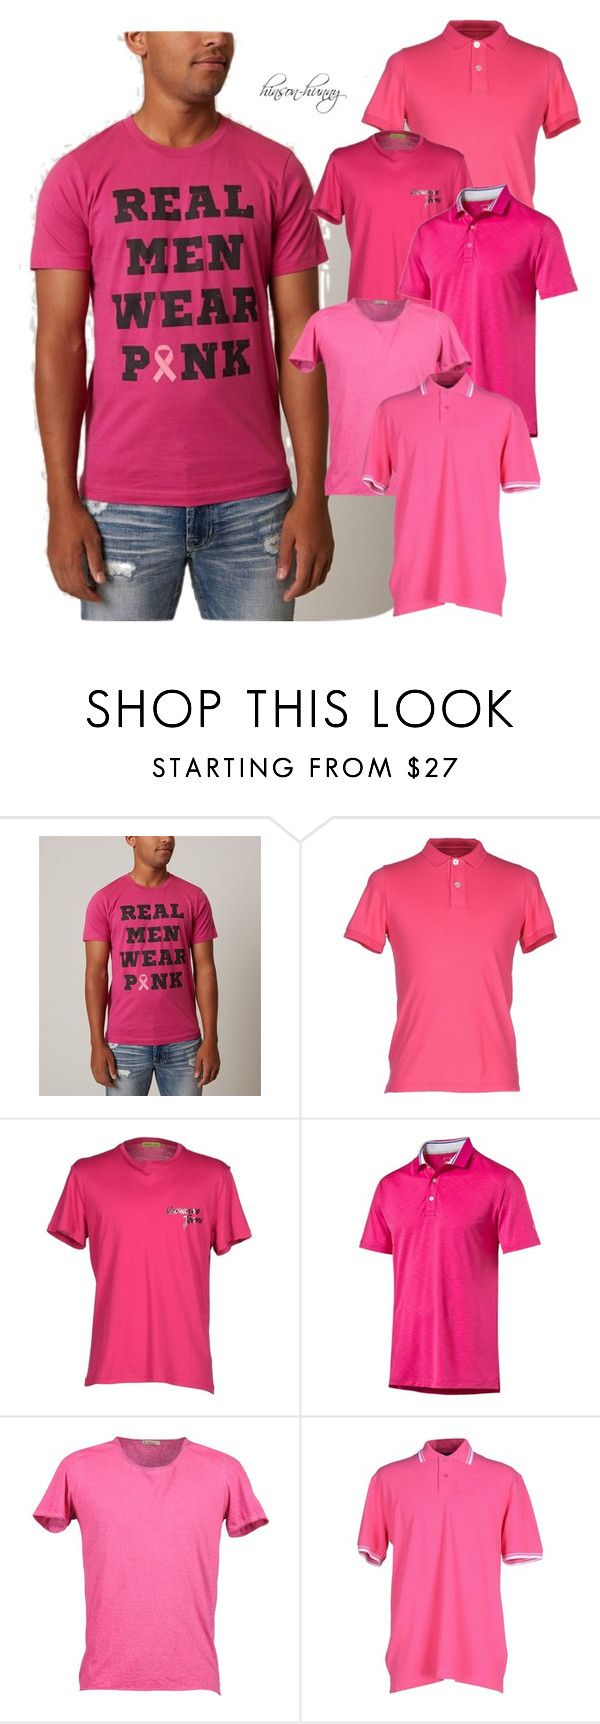 How to pink a wear shirt polyvore